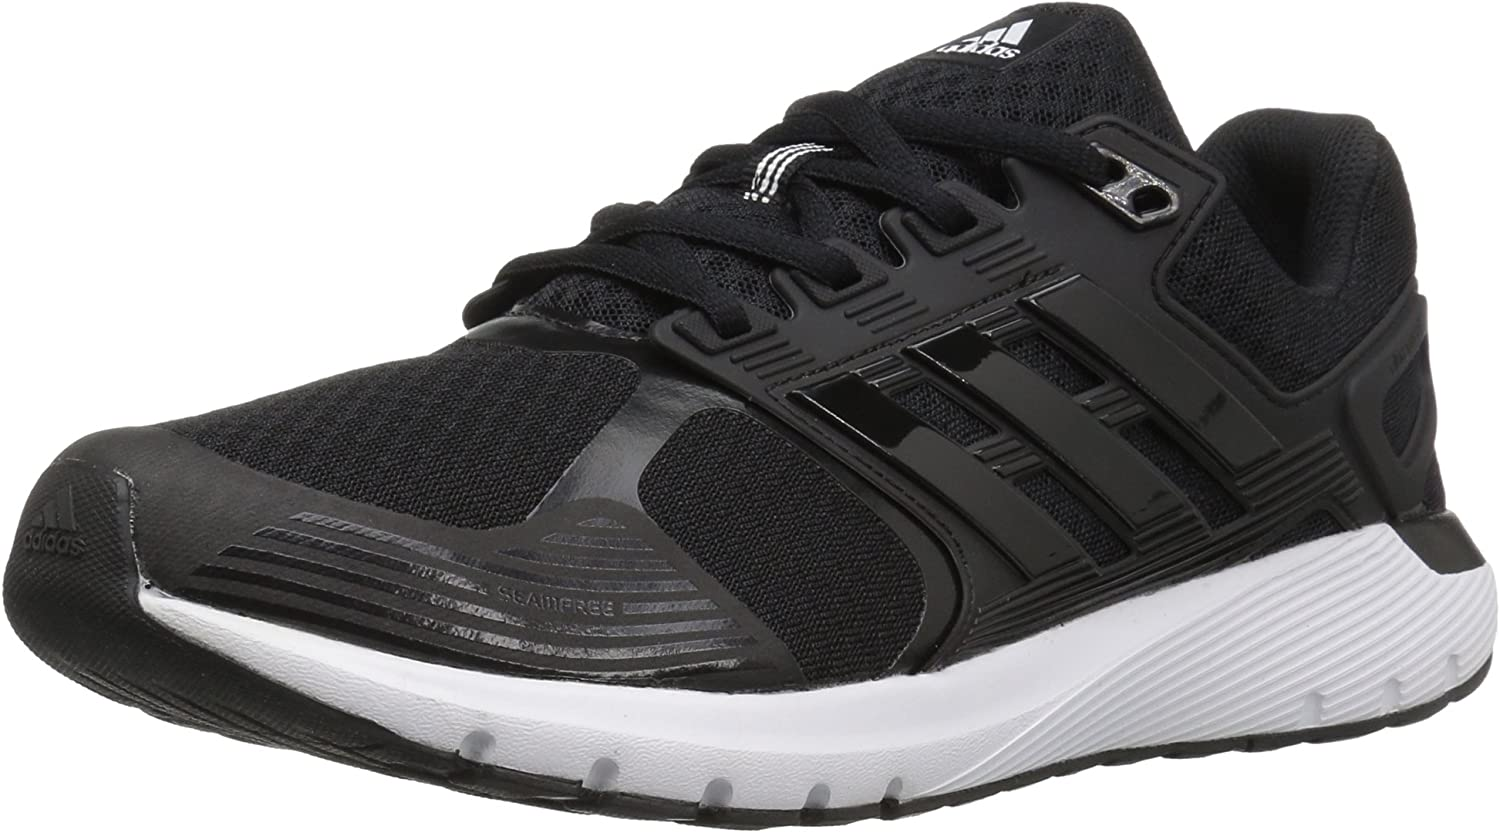 adidas Men's Duramo 8 M Running Shoe